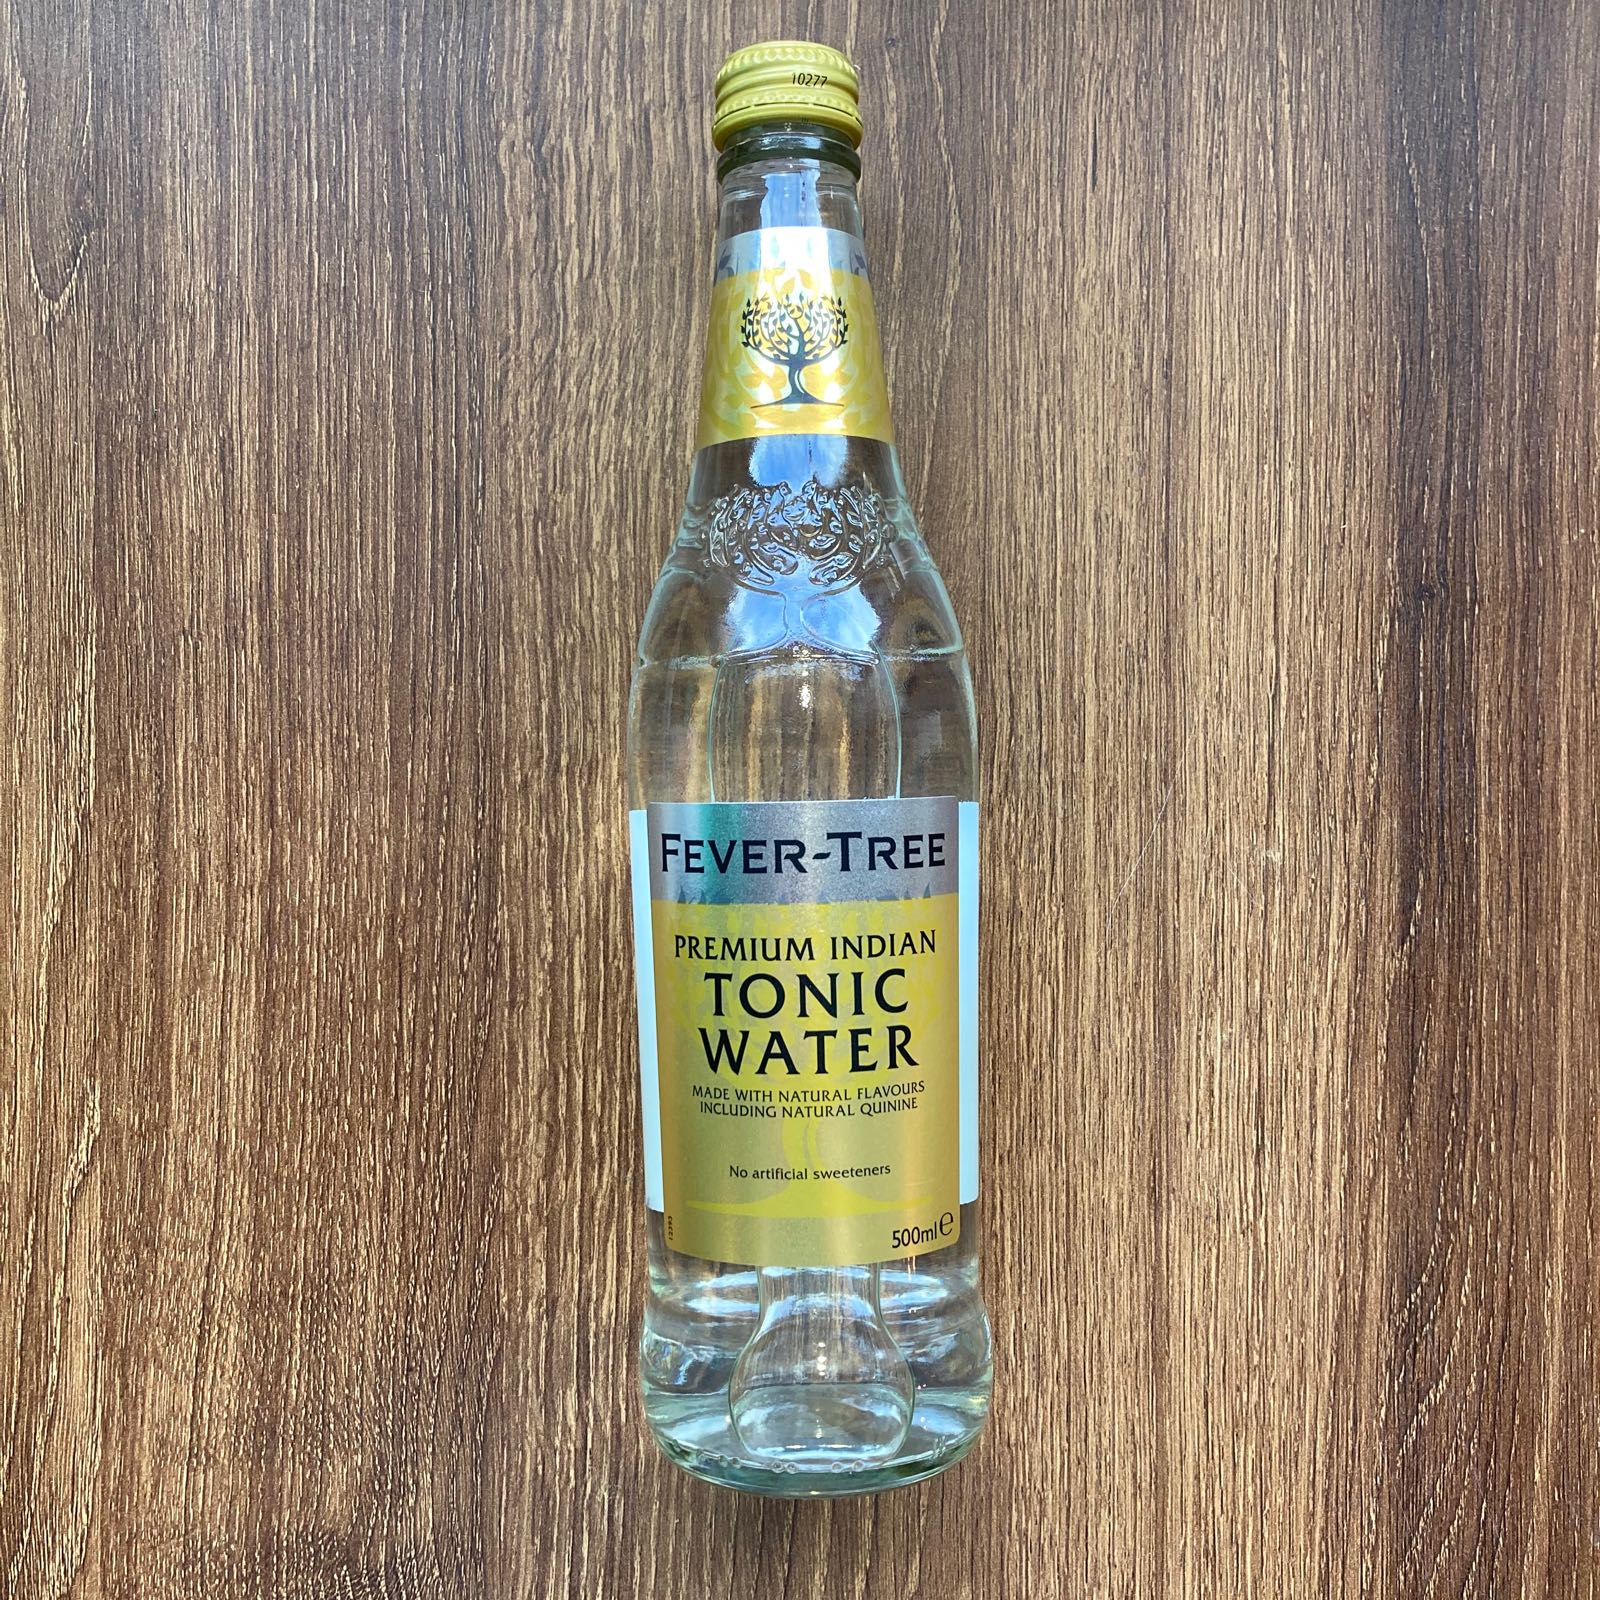 Indian Tonic Water - Fever-Tree